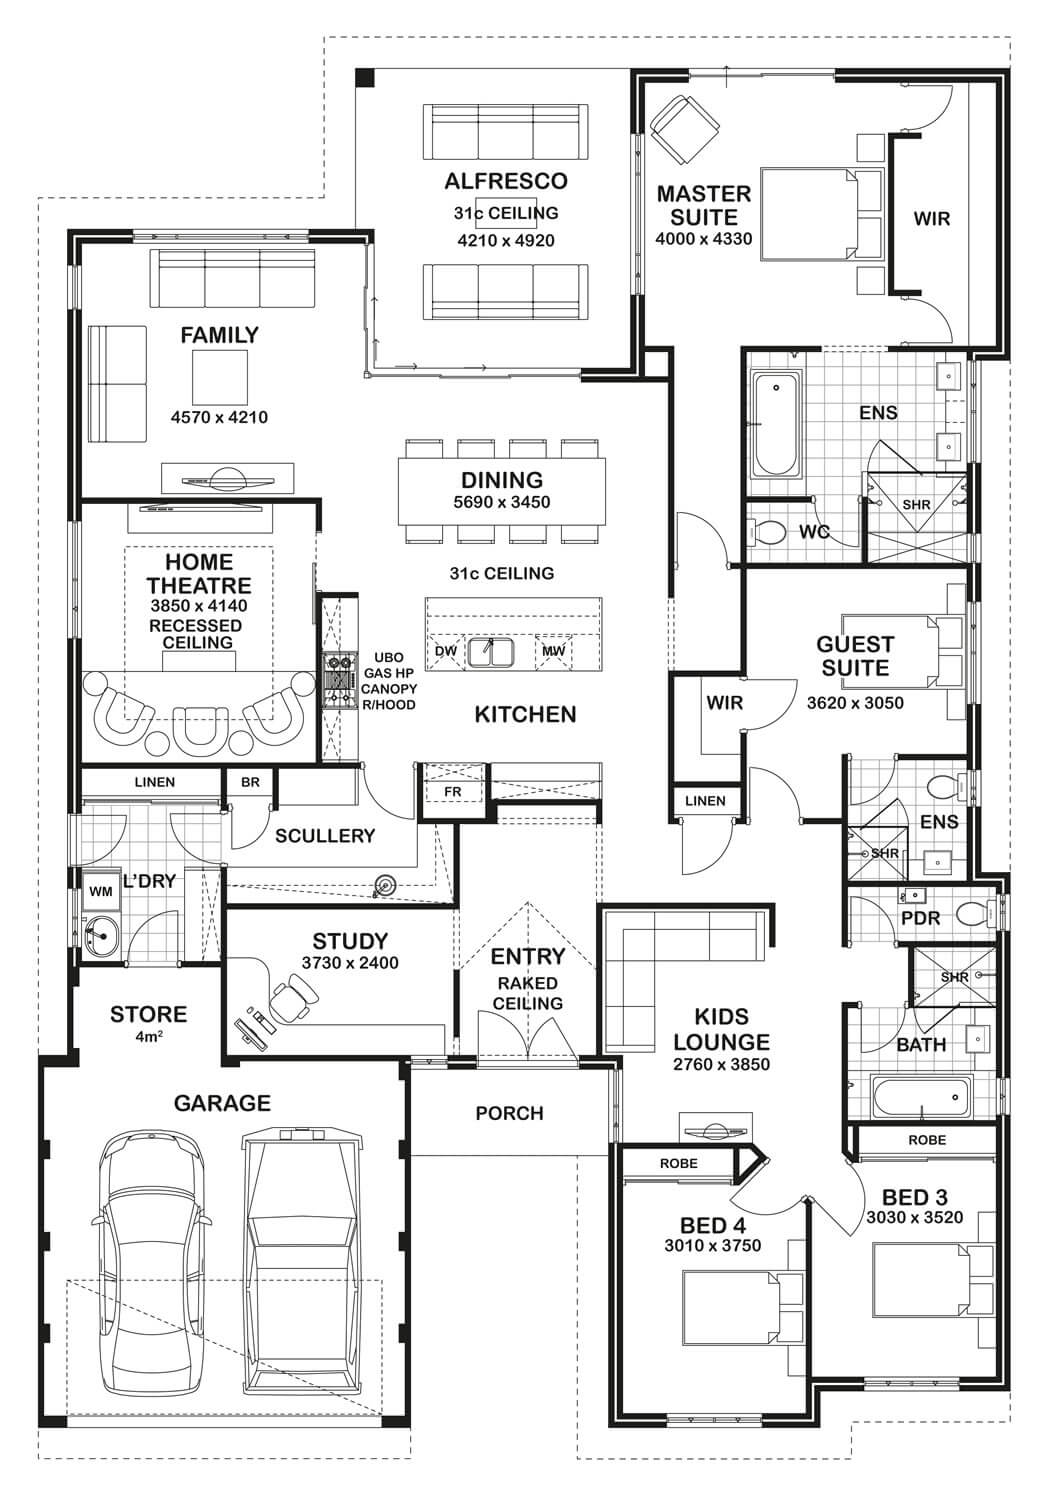 Floor plan friday 4 bedroom 3 bathroom home for 5 bedroom floor plan designs